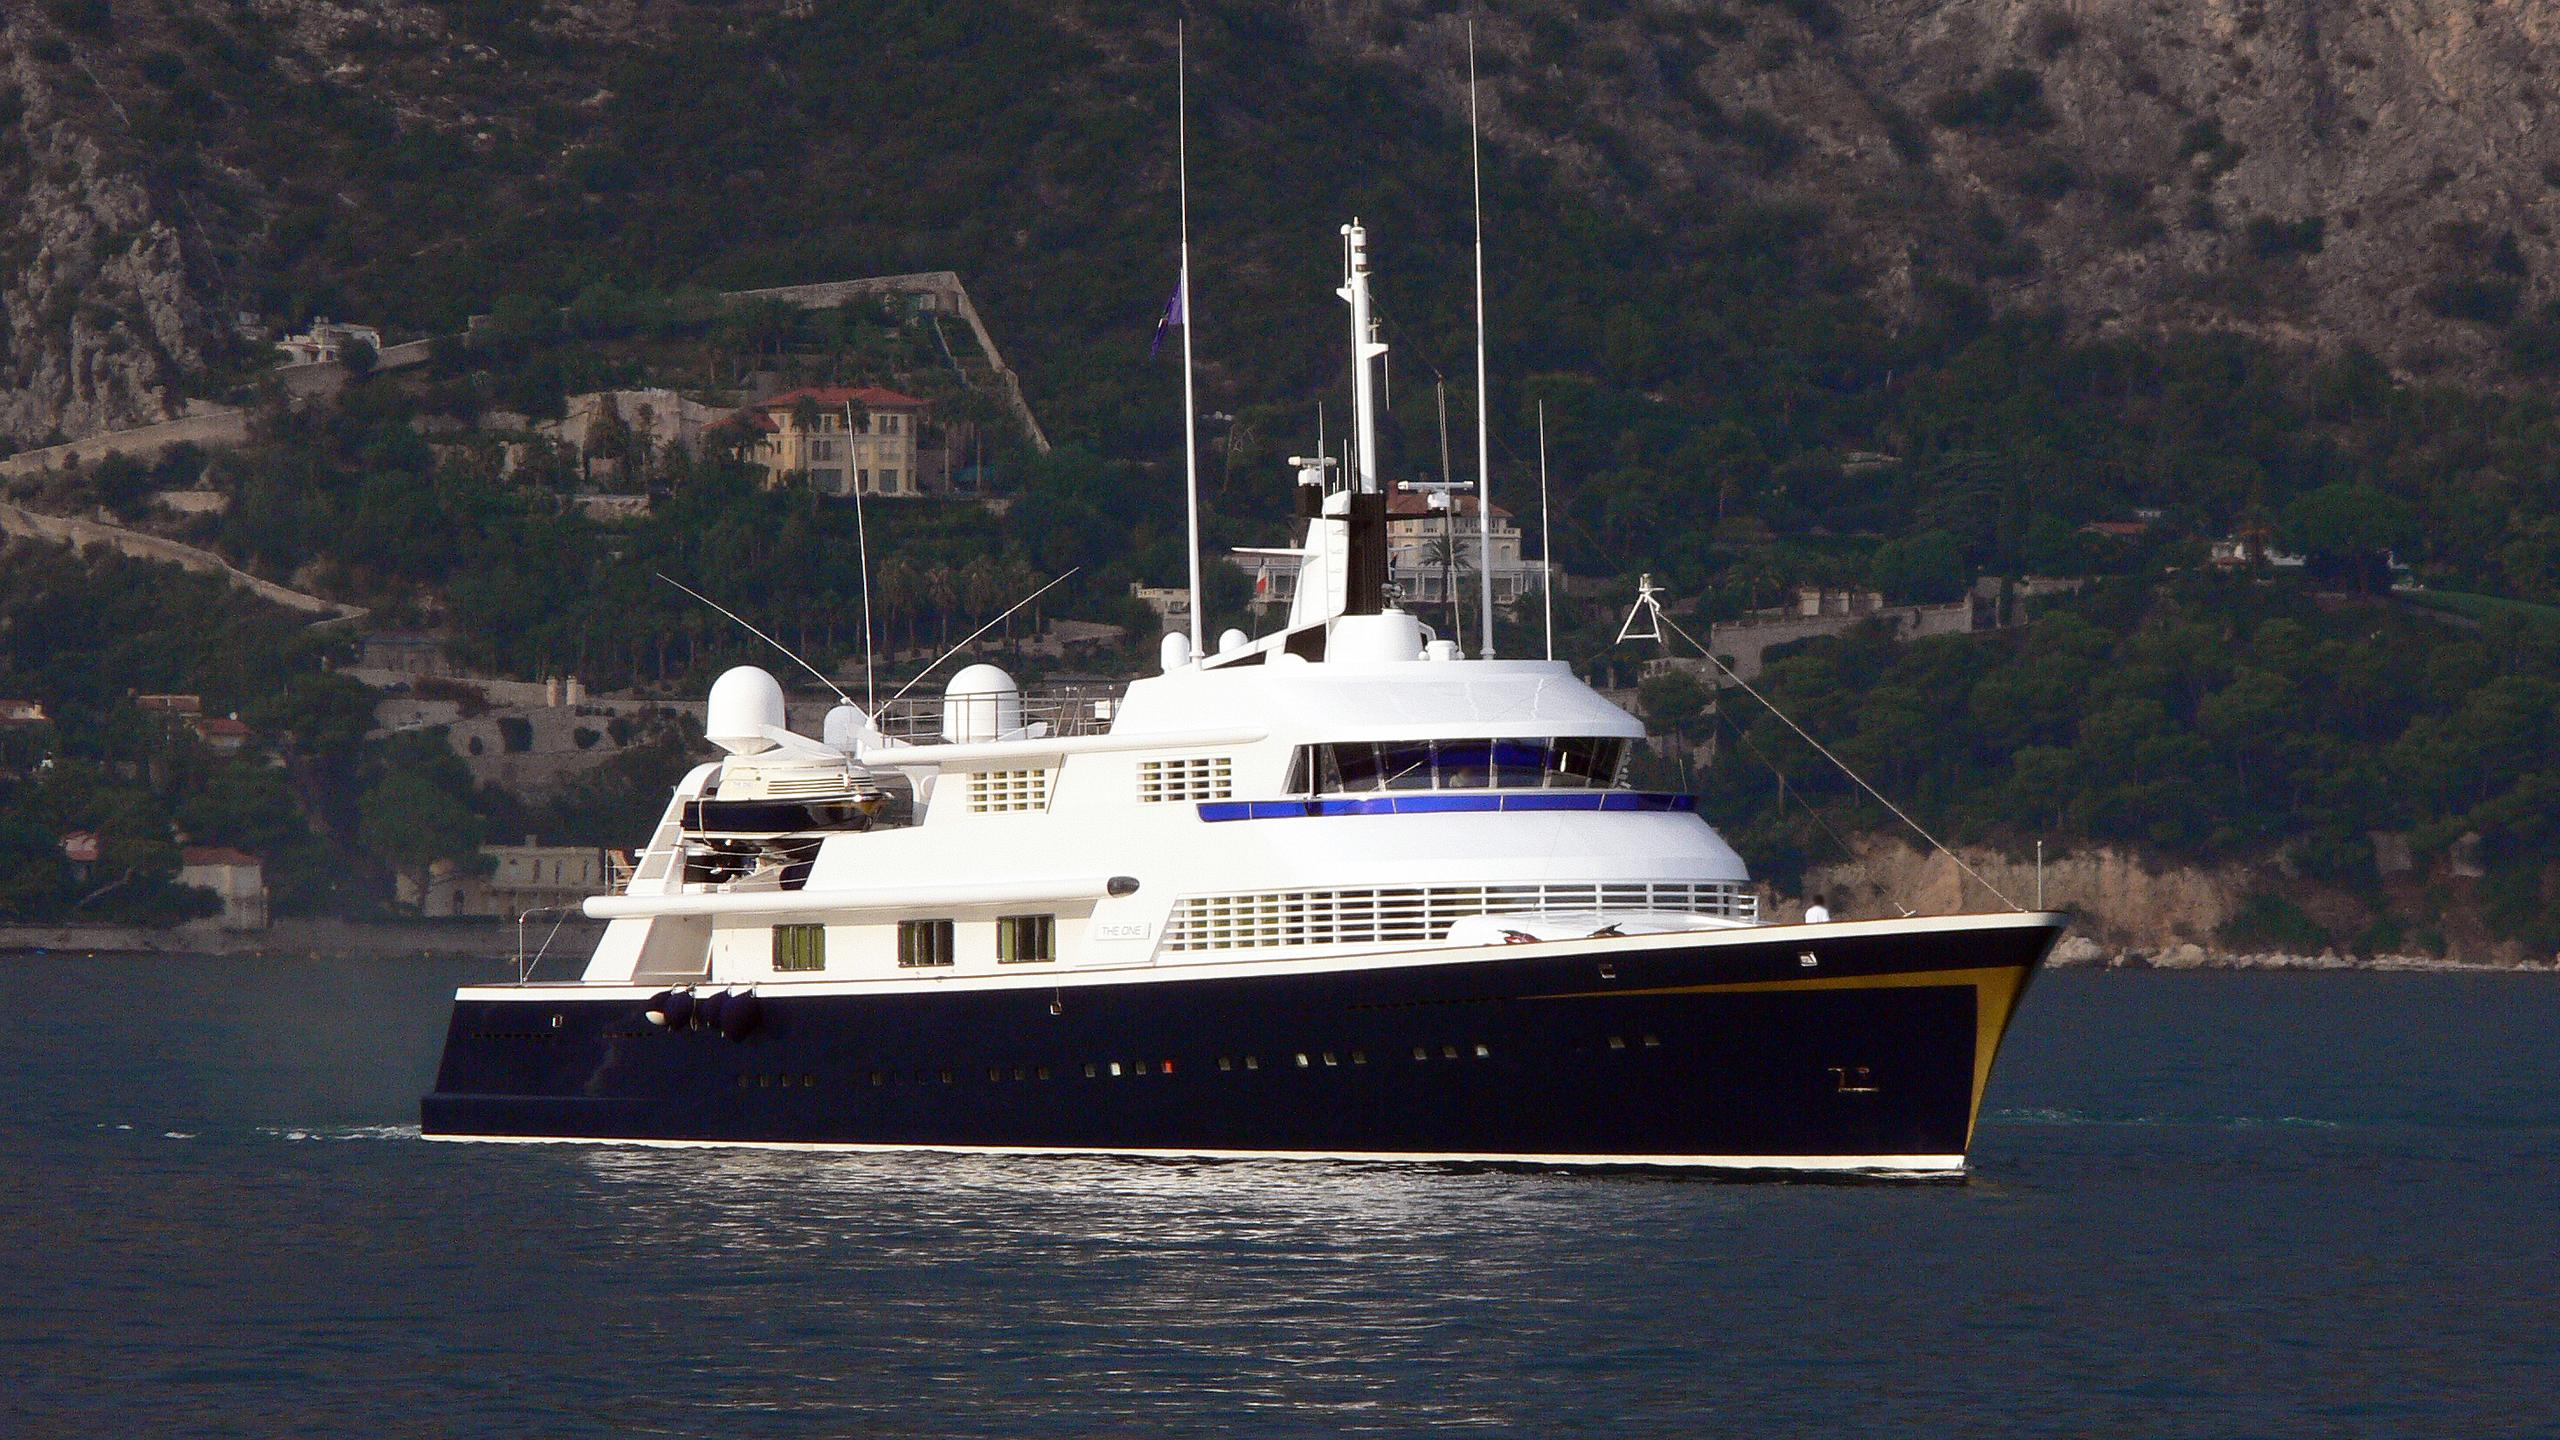 the-one-motor-yacht-lurssen-1973-71m-half-profilethe-one-motor-yacht-lurssen-1973-71m-half-profile